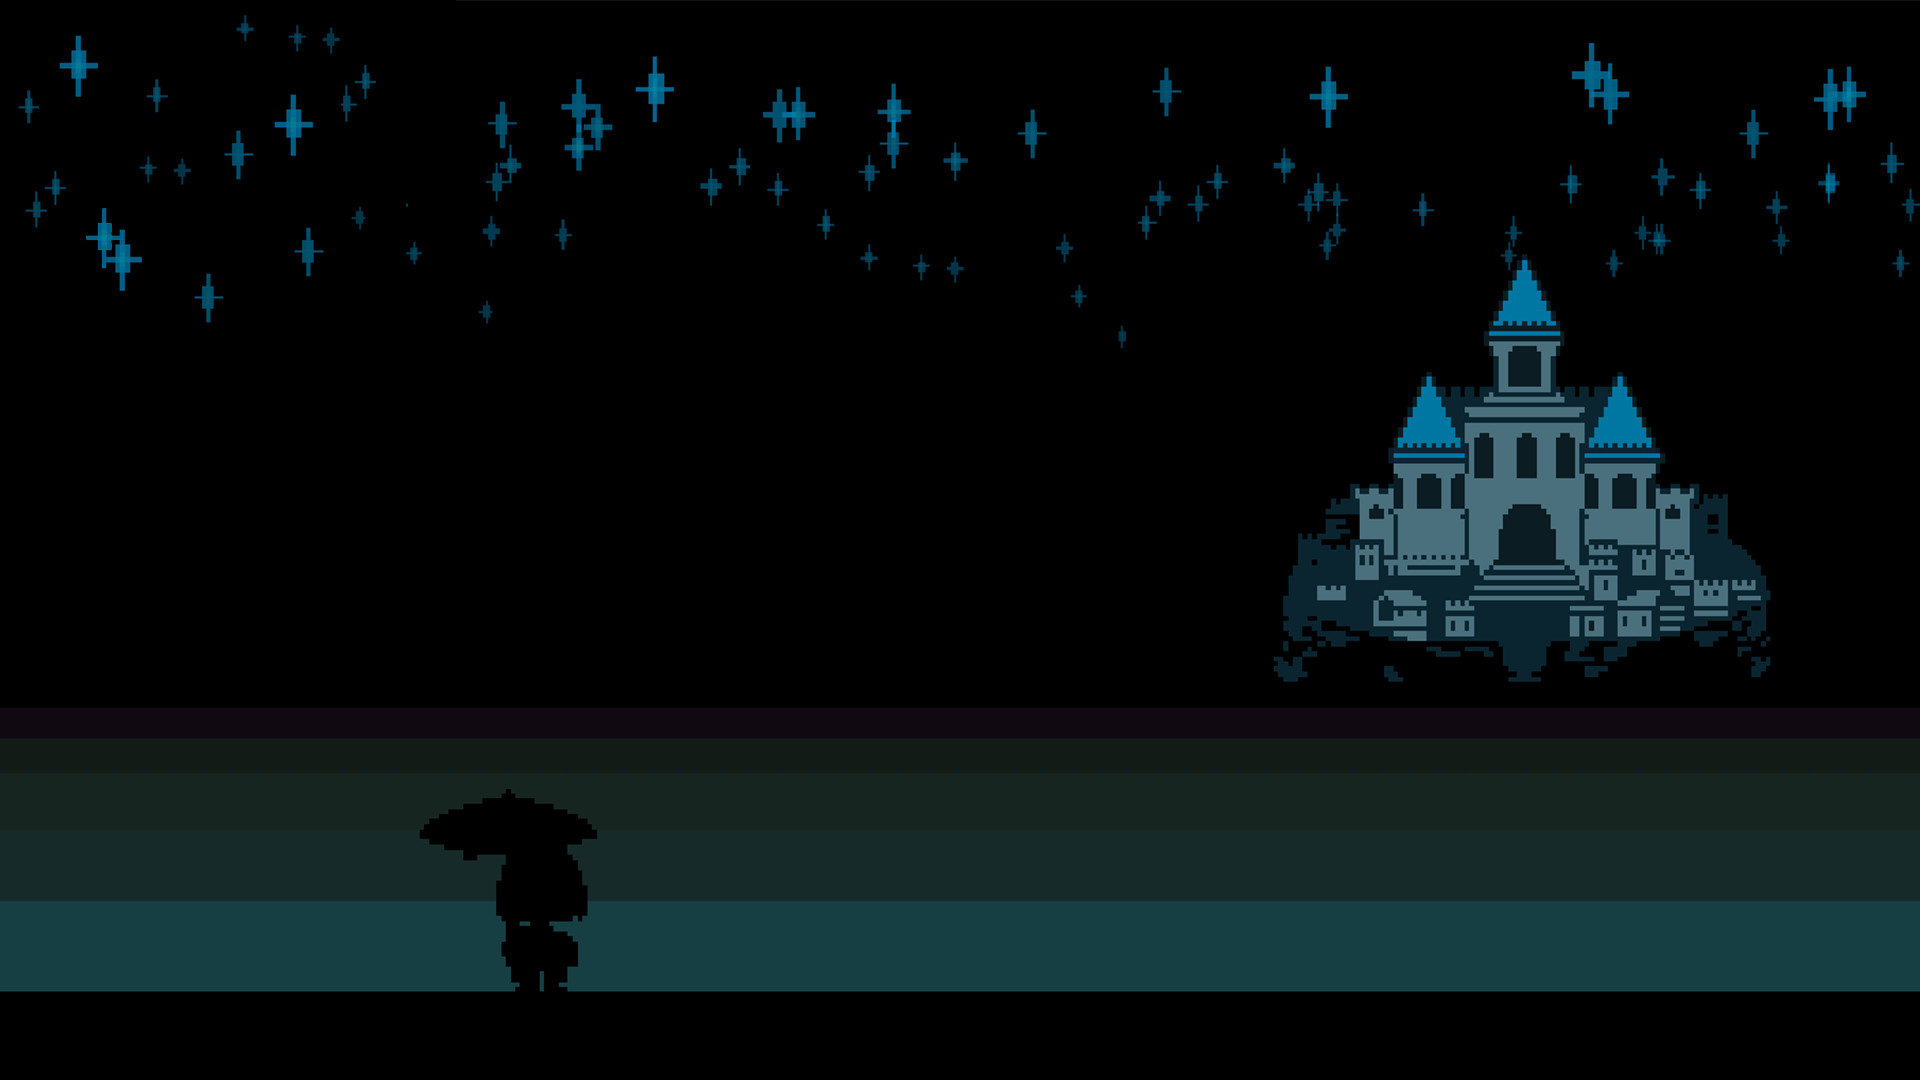 1920x1080 ... undertale frisk kingdom night 8 bit wallpapers hd desktop ...